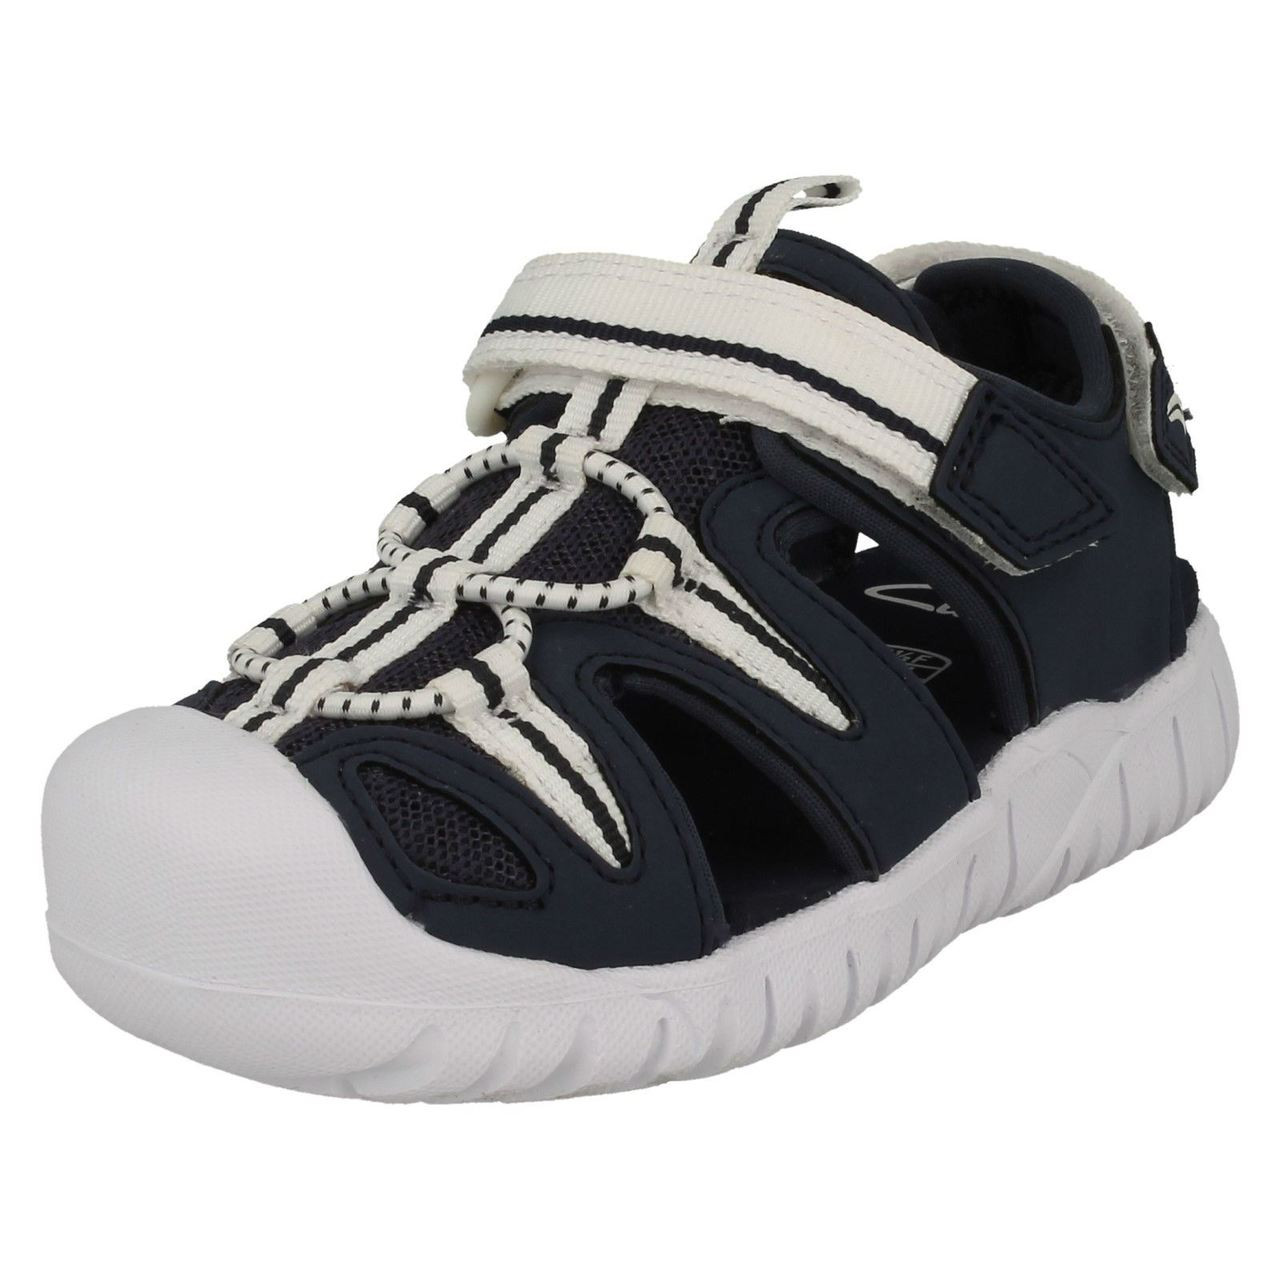 Boys Clarks Casual Trainers Balmy Mix